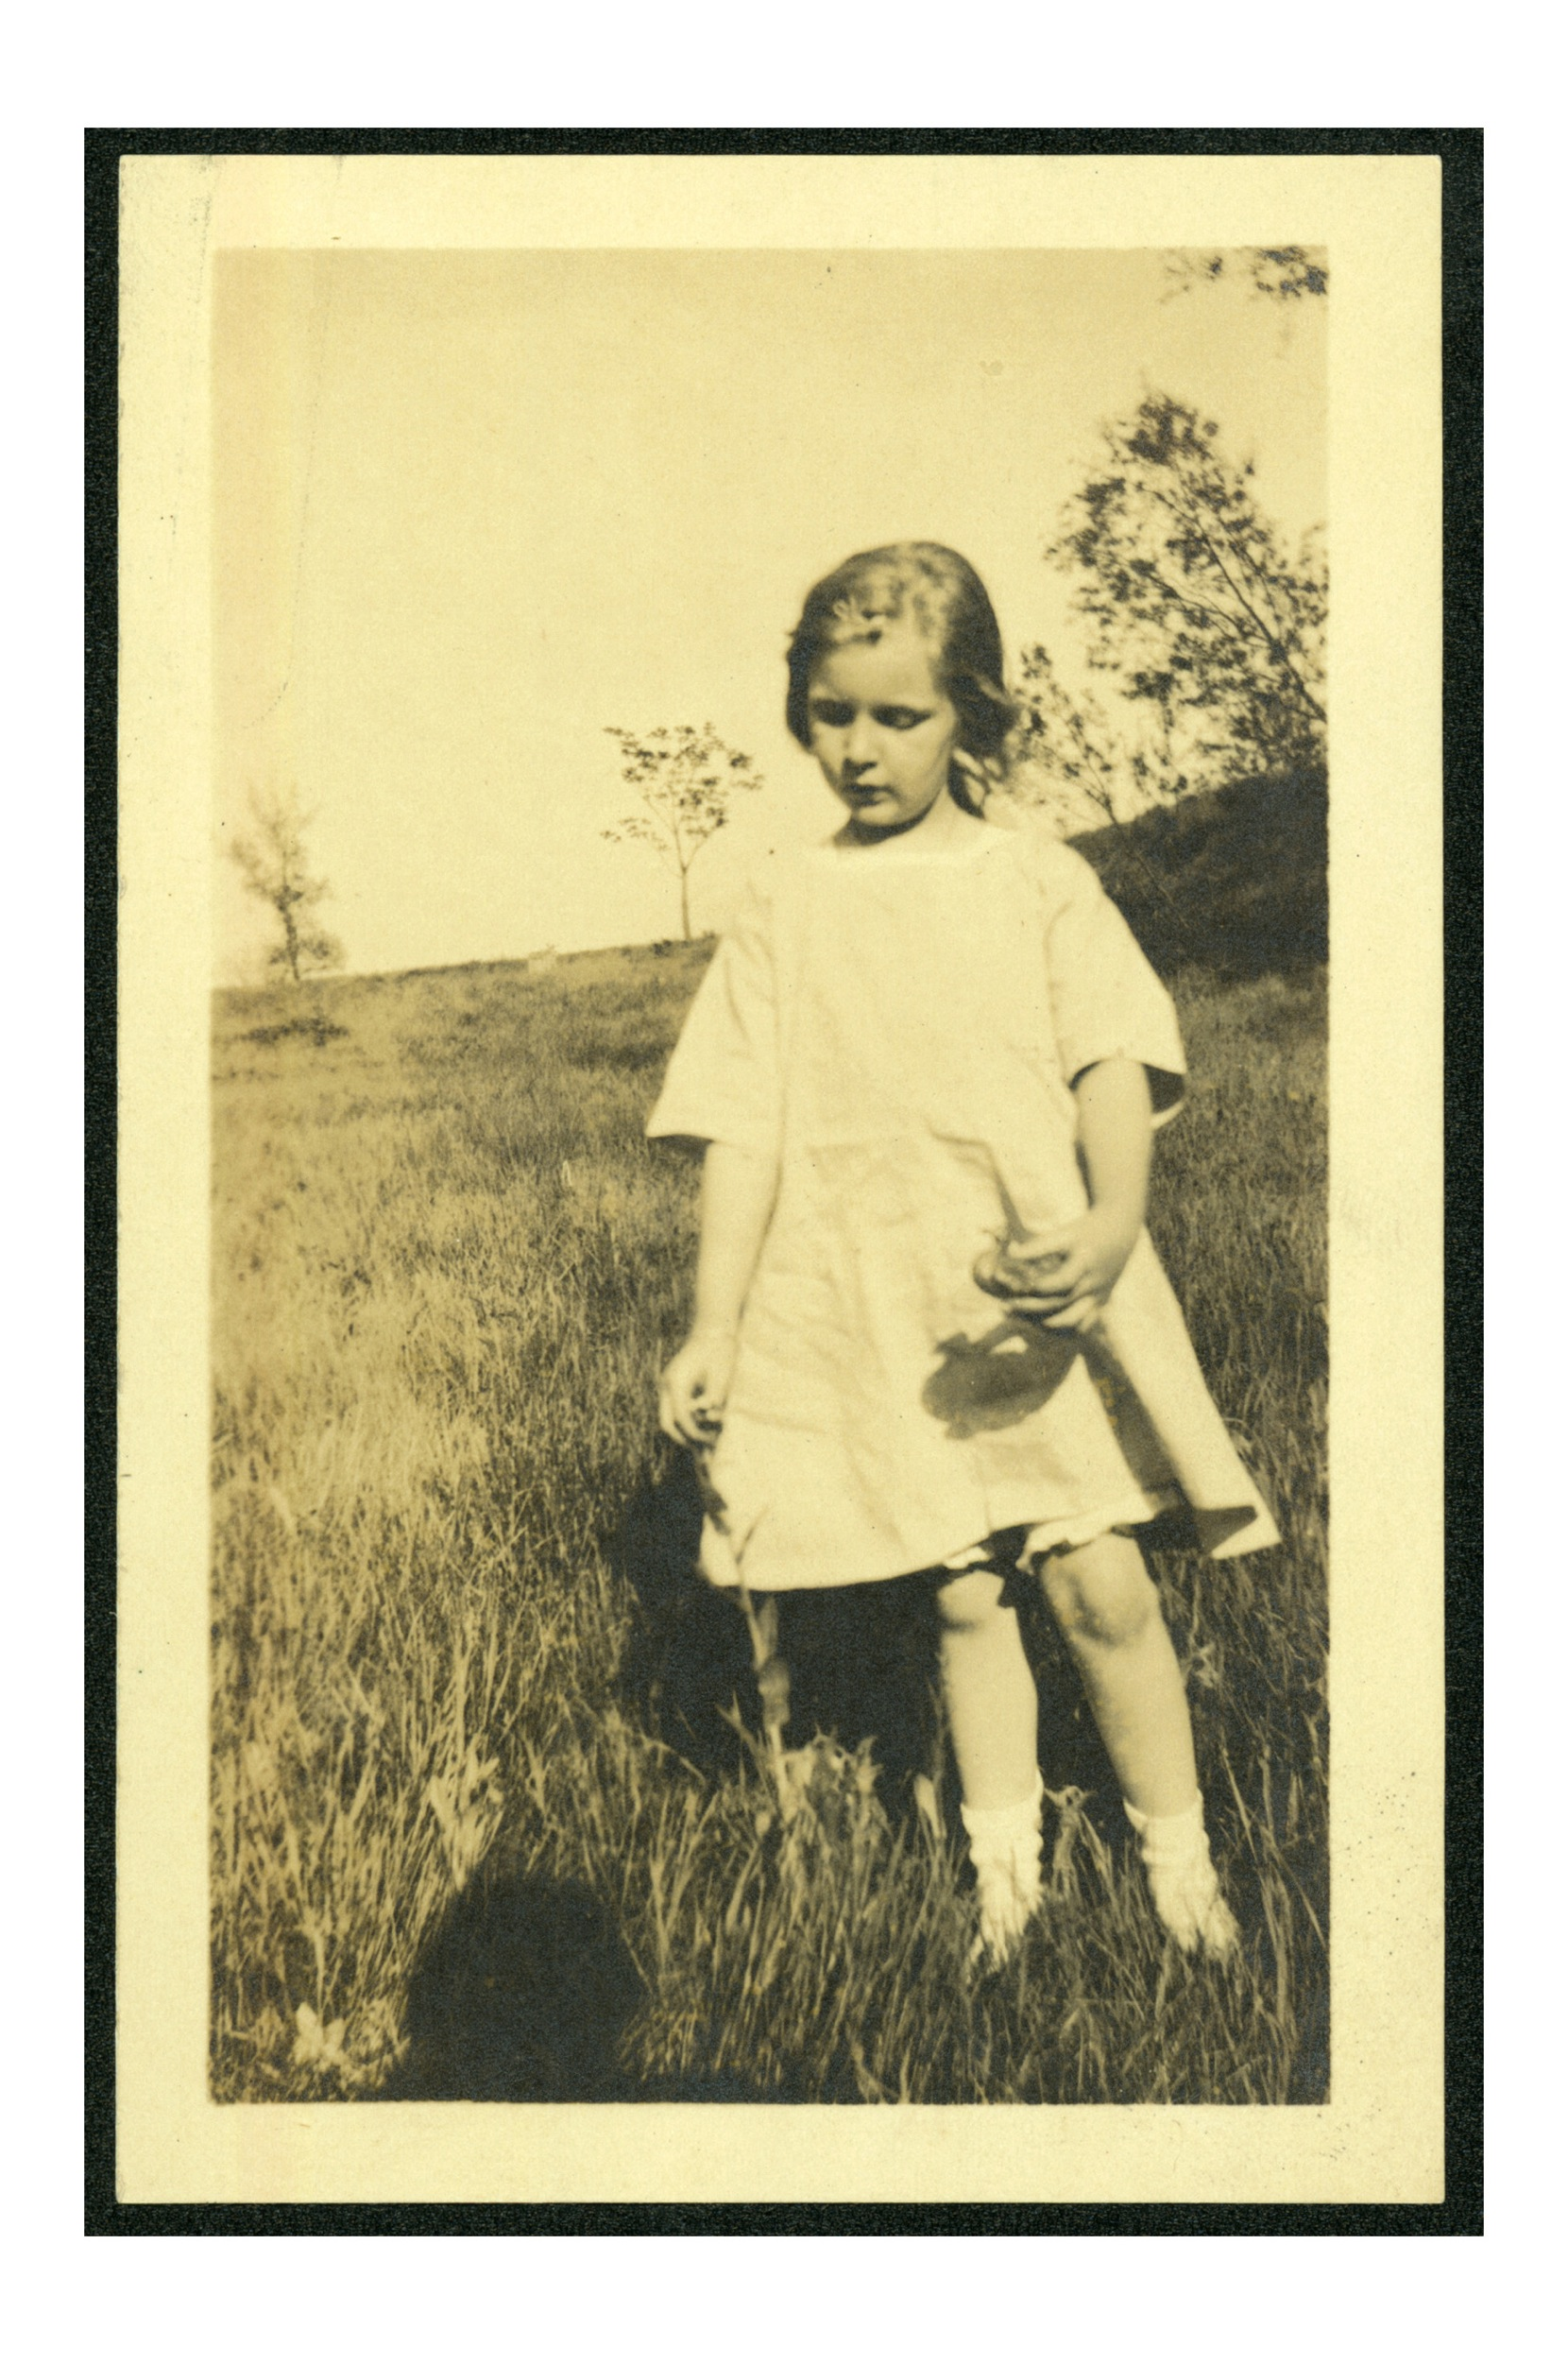 martha-gellhorn-as-a-child